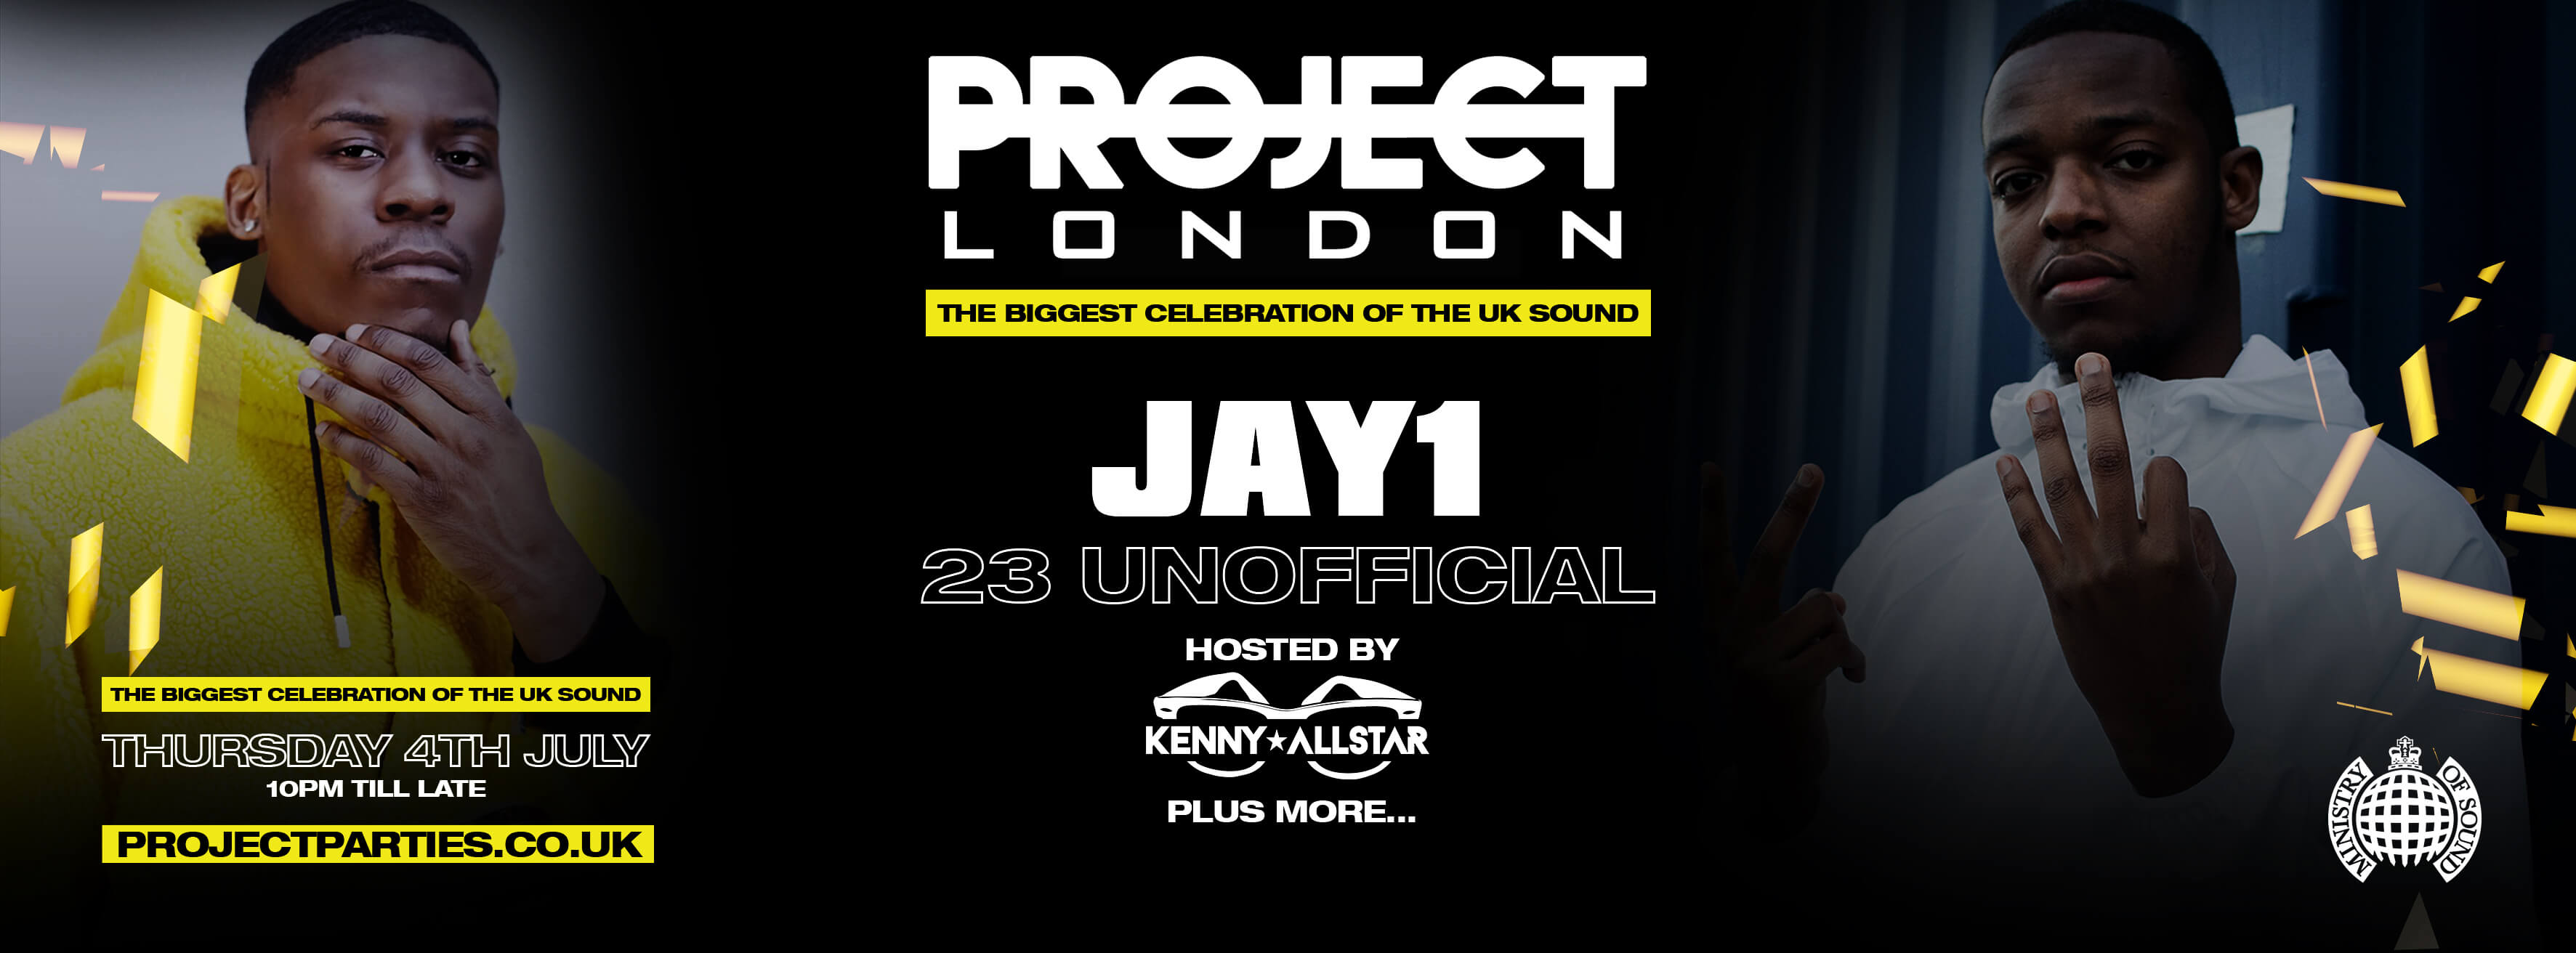 Project London Presents: Jay1, 23 UnOfficial & Dapz Official + Plus Special Guests! Get your ticket NOW!